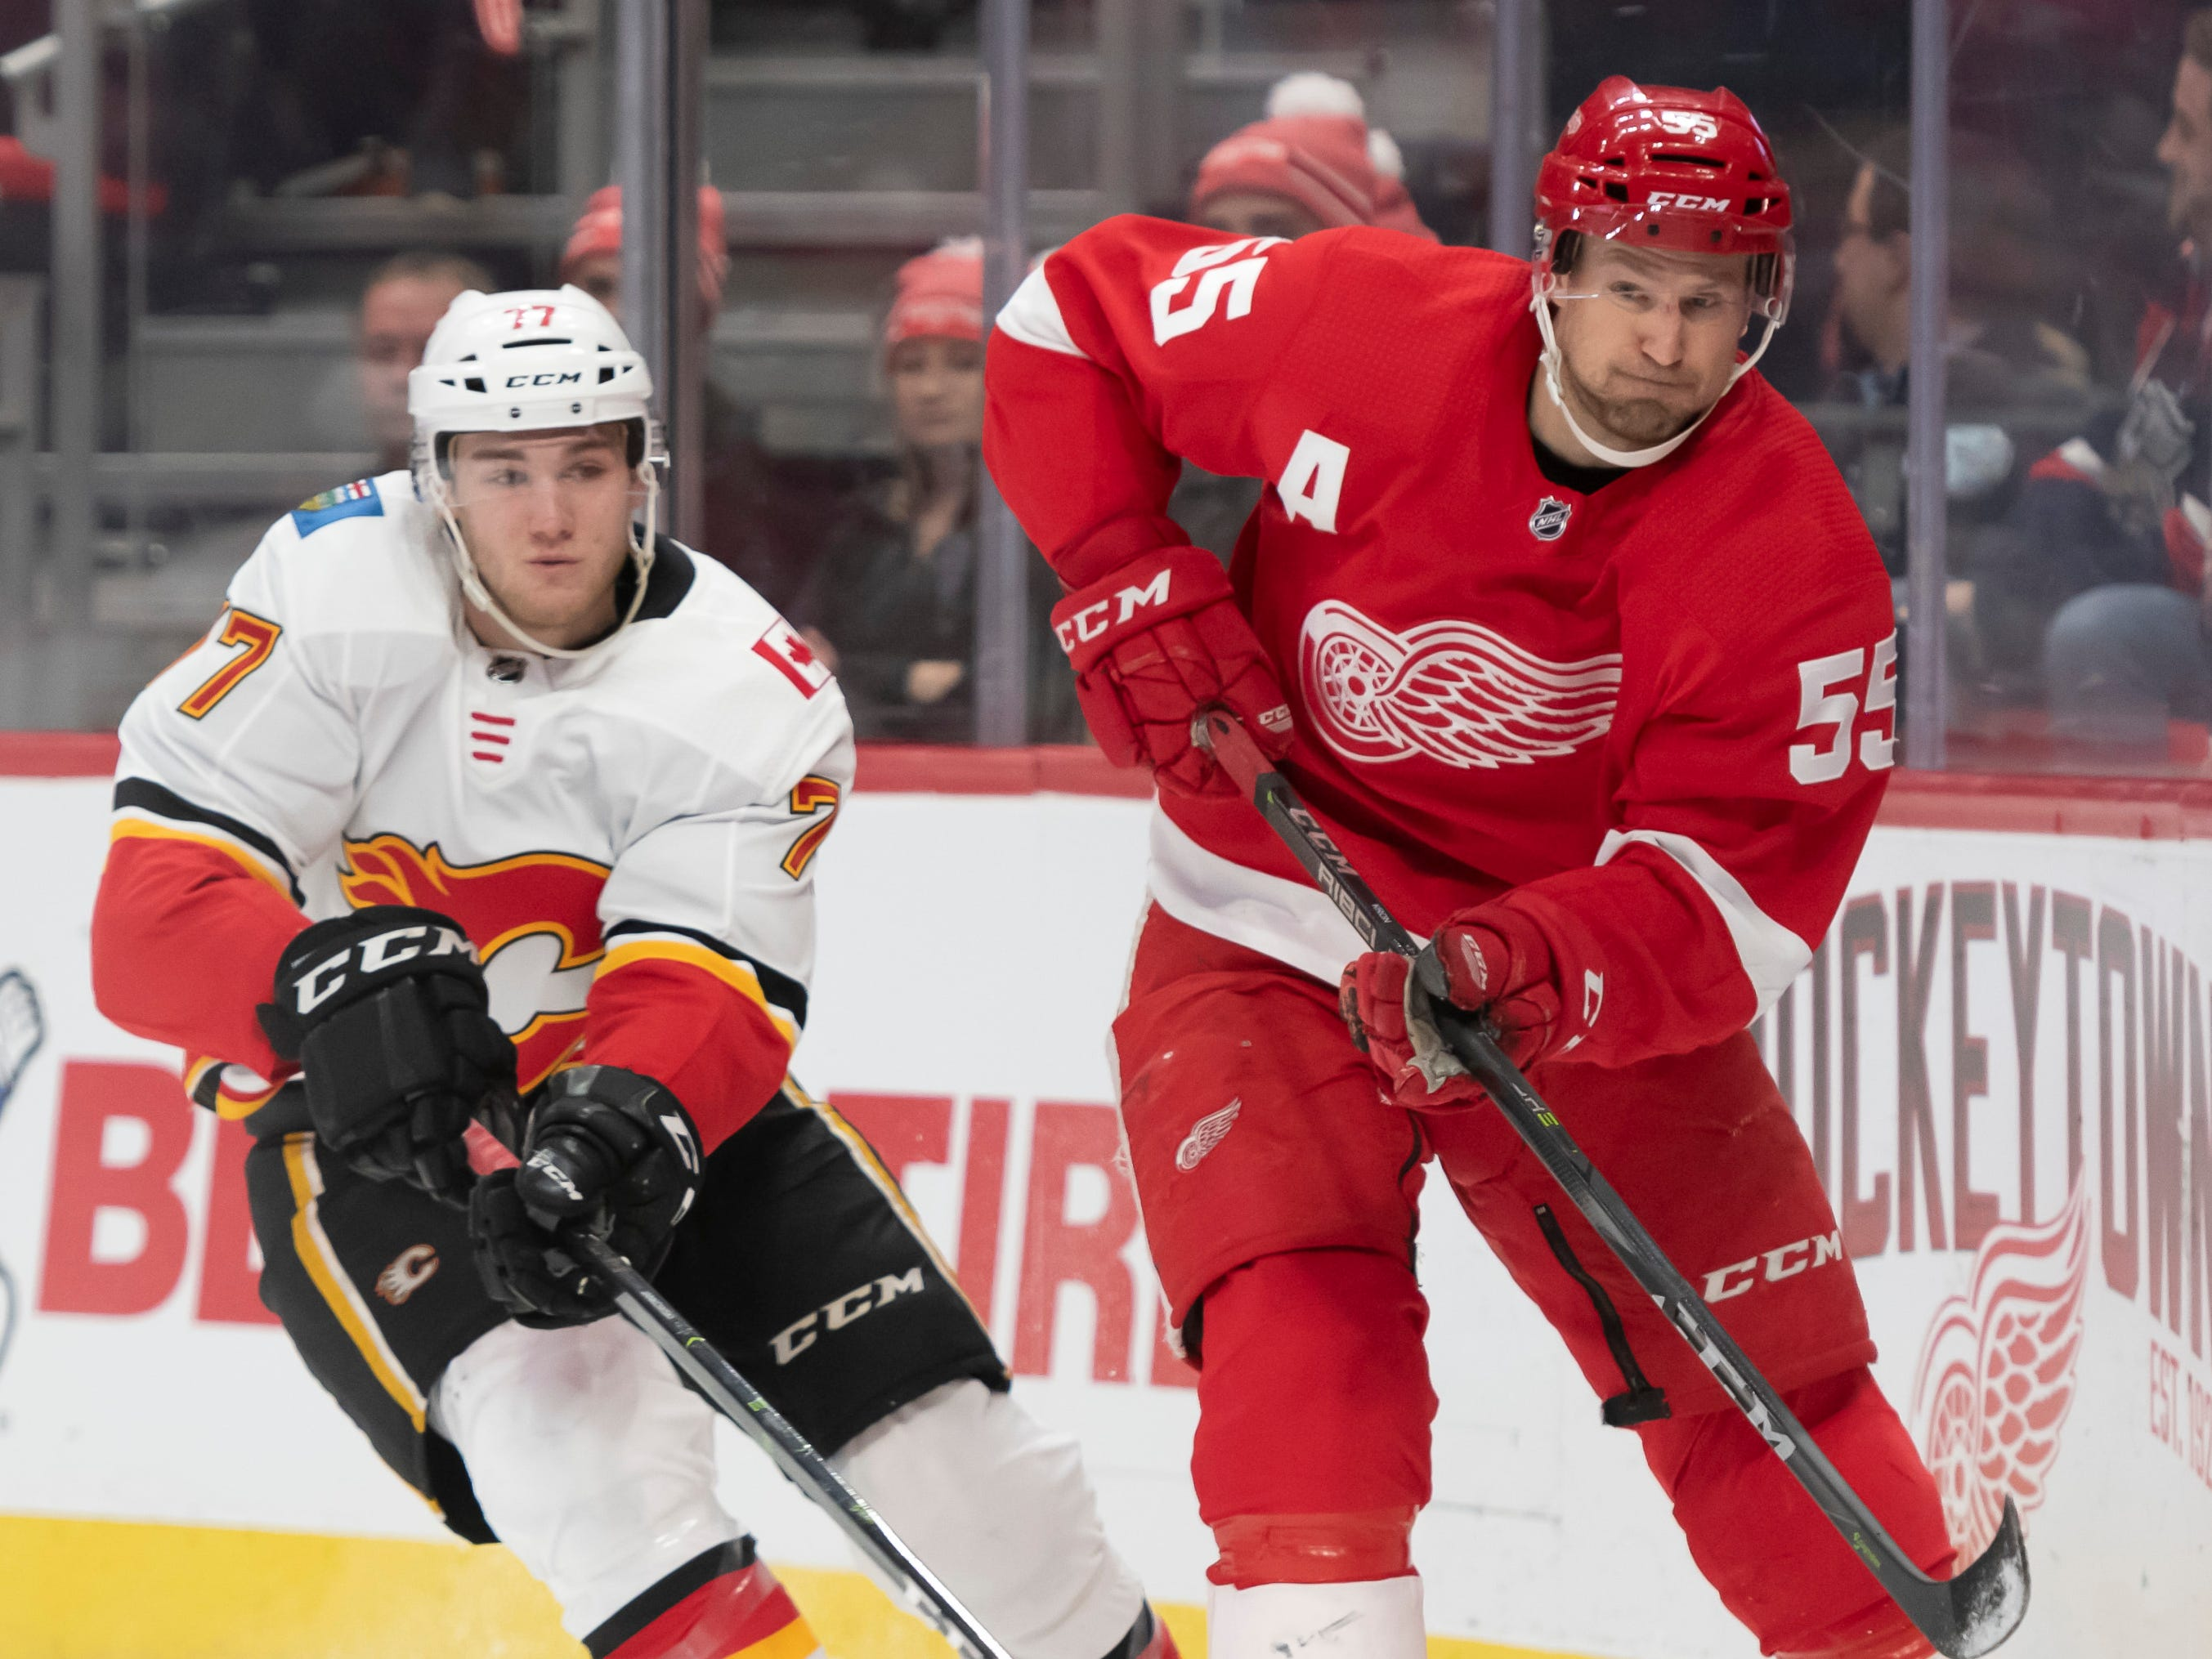 Detroit defenseman Niklas Kronwall passes the puck away from Calgary center Mark Jankowski in the second period.